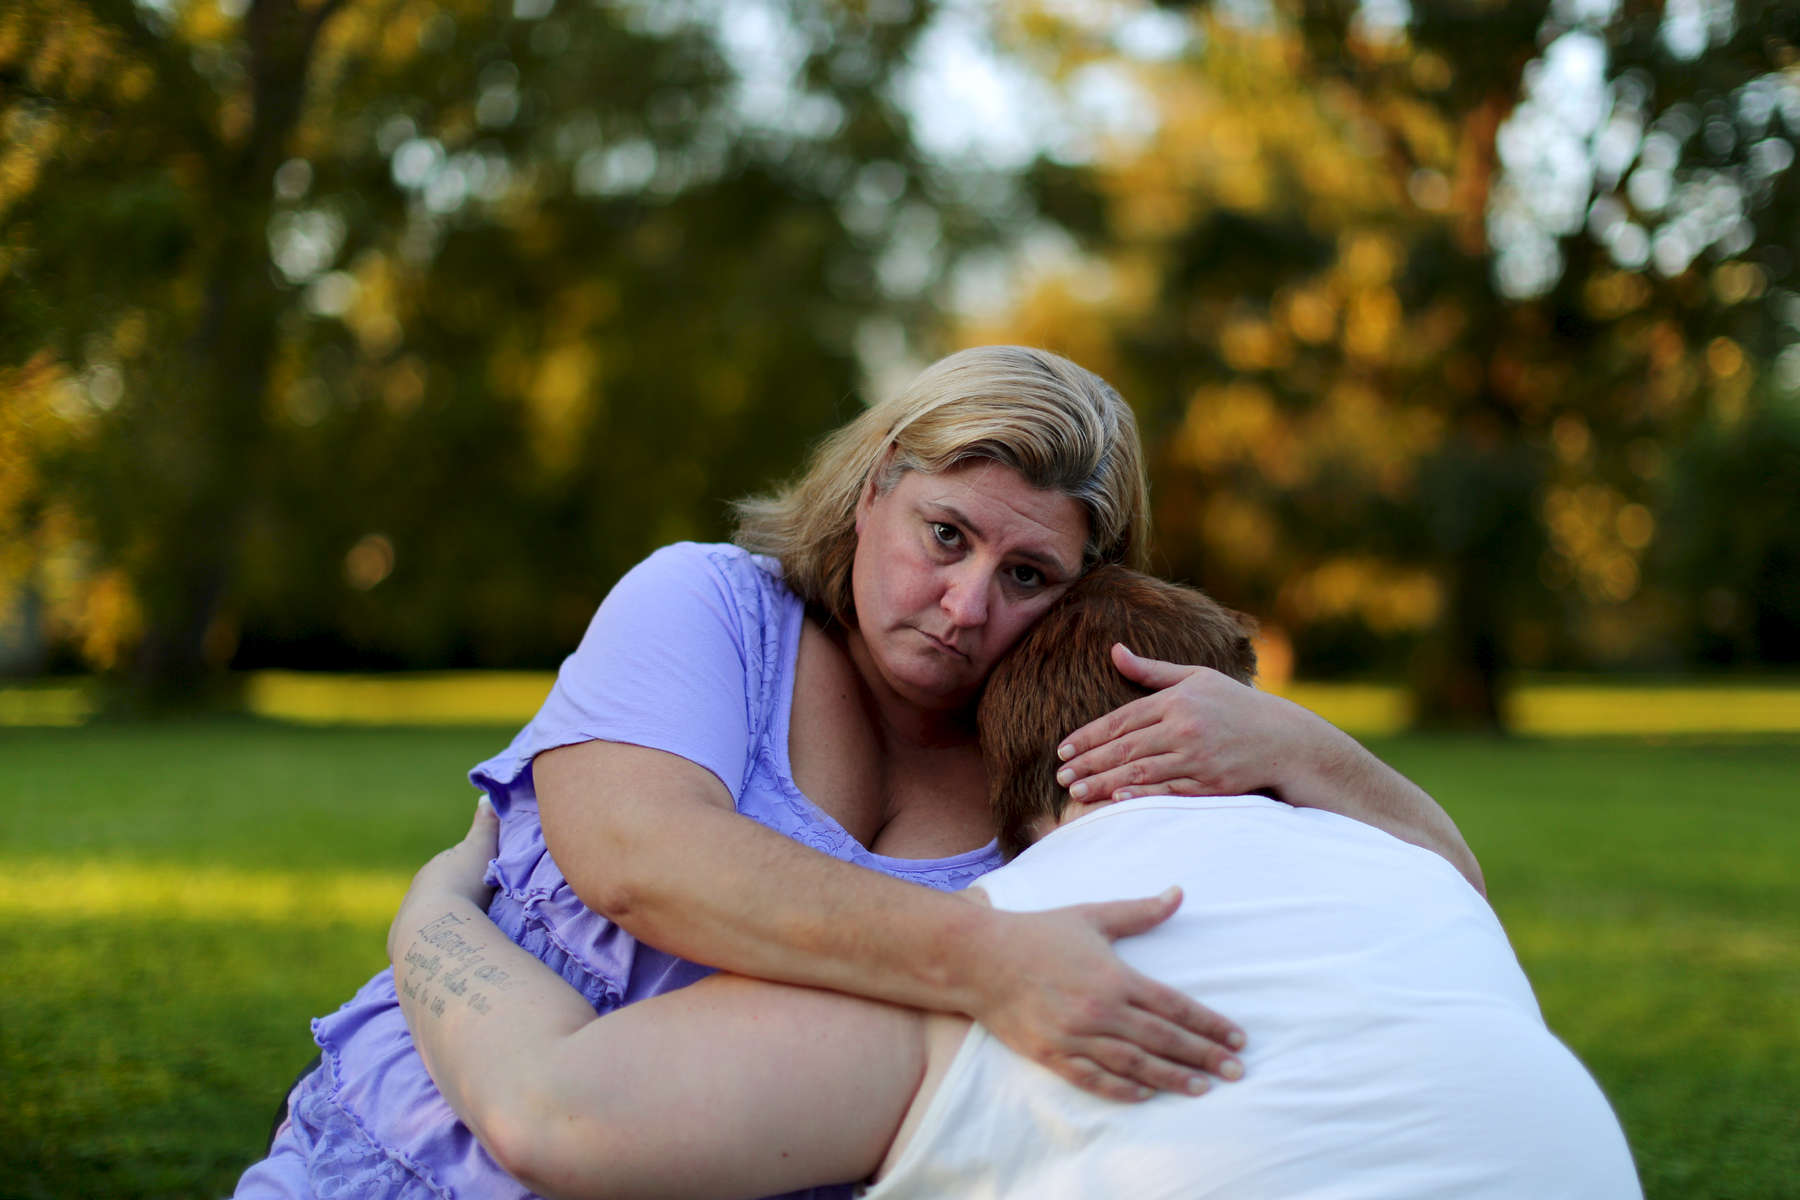 Michele Gans holds her daughter Emma, who was attacked and severely beaten while living at Rover River Academy, as they sit for a portrait at thier home in Galesburg, Ill.